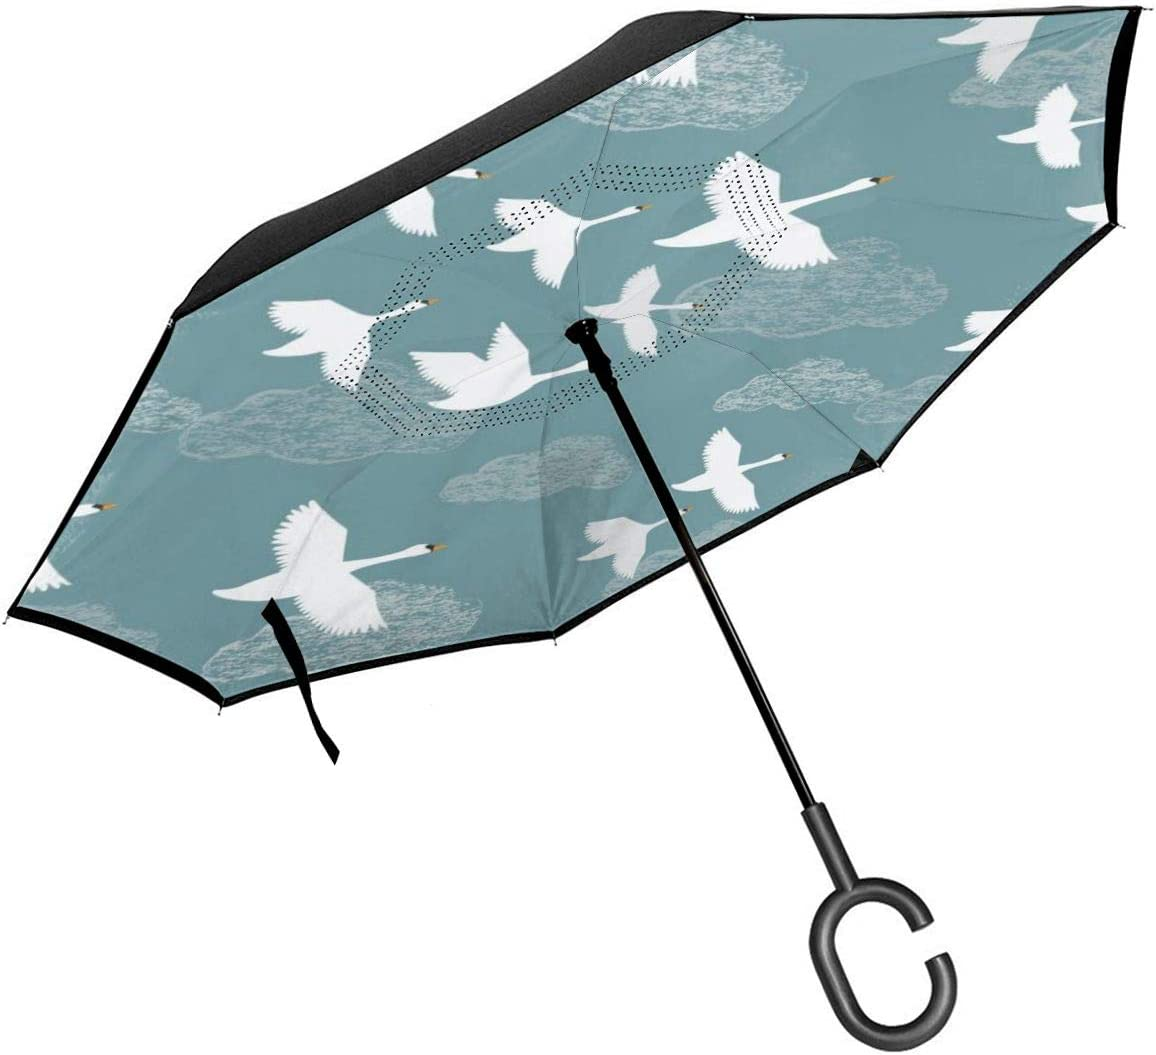 Self Stand Upside Down with C-Shaped Handle PYFXSALA Crane Flying Windproof Inverted Umbrella Double Layer UV Protection Folding Reverse Umbrella for Car Rain Outdoor